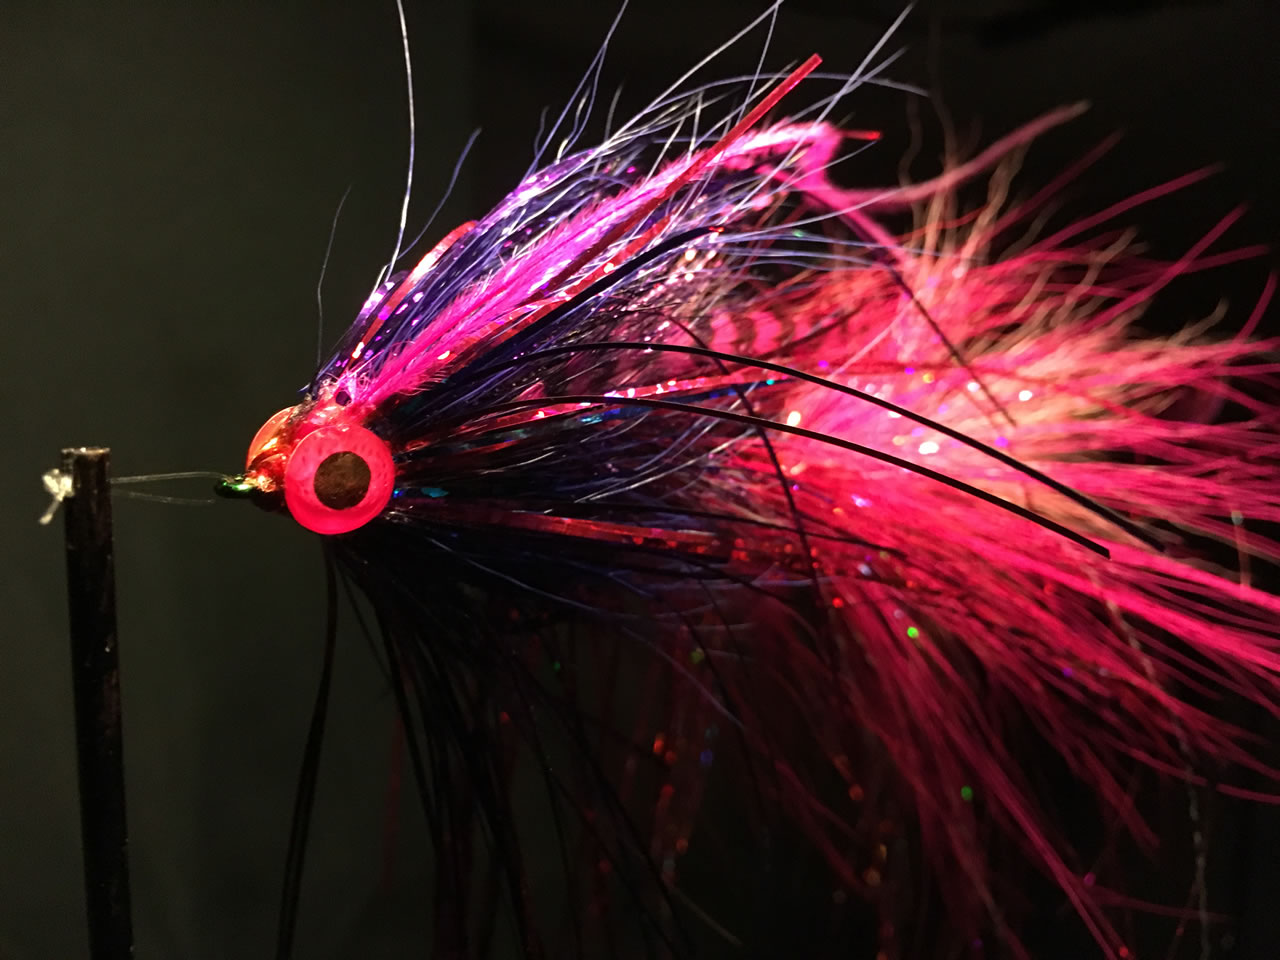 Boy meets Girl - articulated pike fly